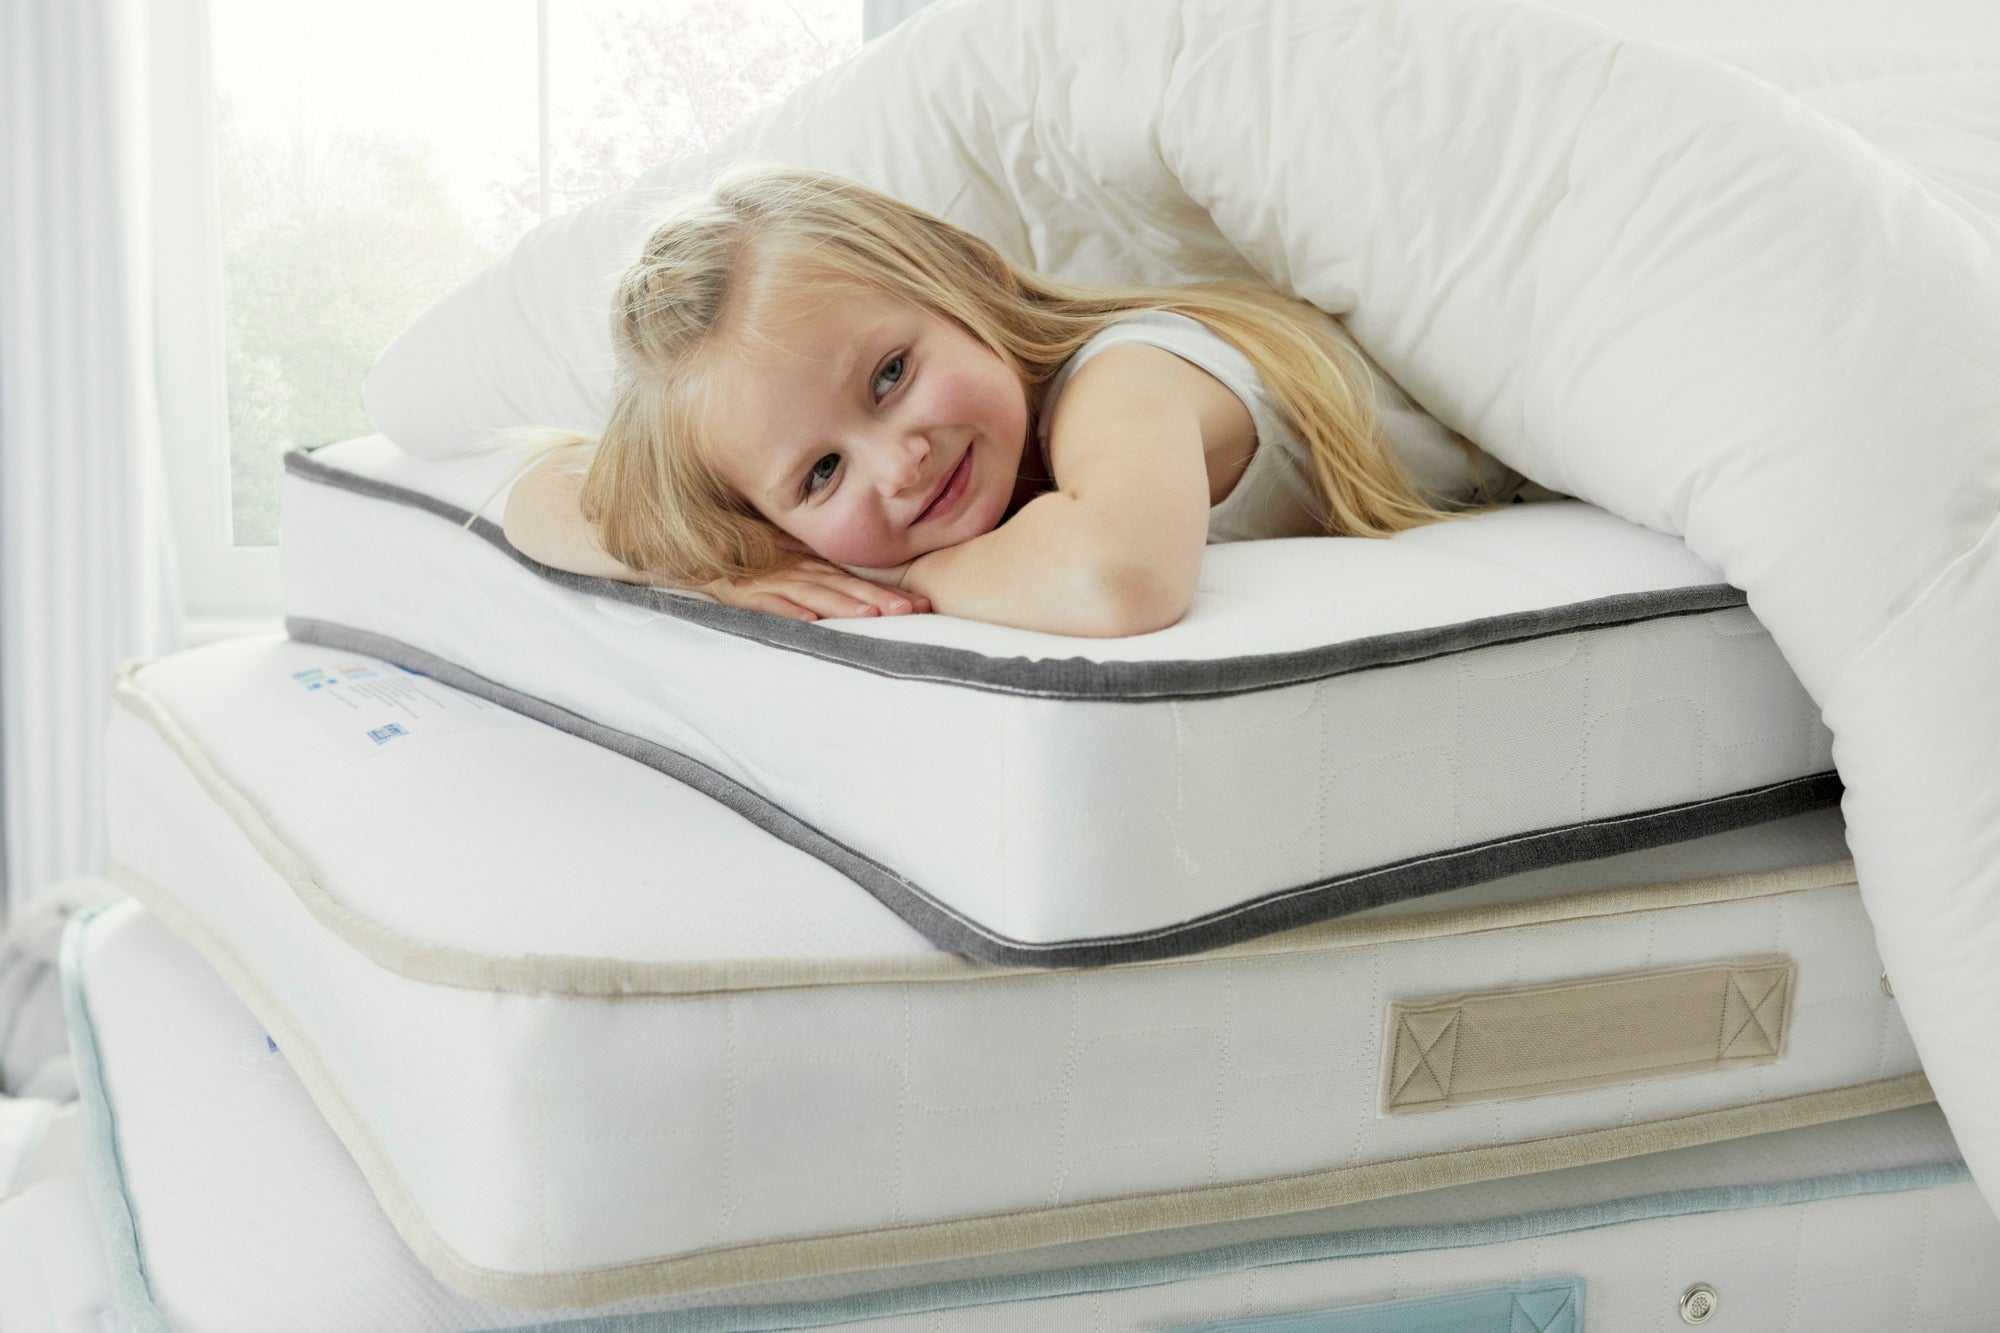 Behind The Scenes: Your Mattress Questions Answered